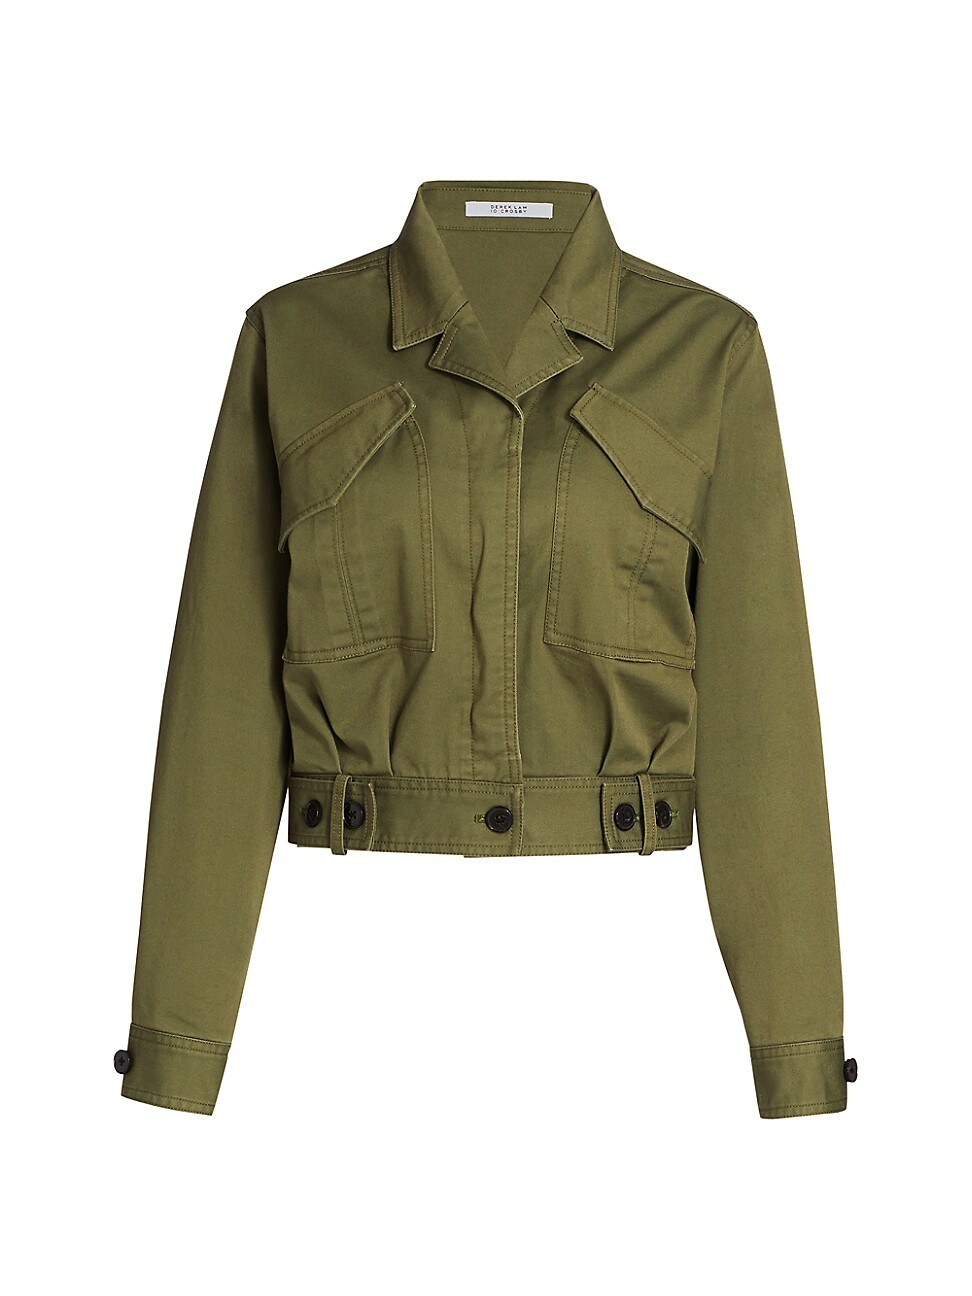 Derek Lam 10 Crosby WOMEN'S GWEN FIELD JACKET